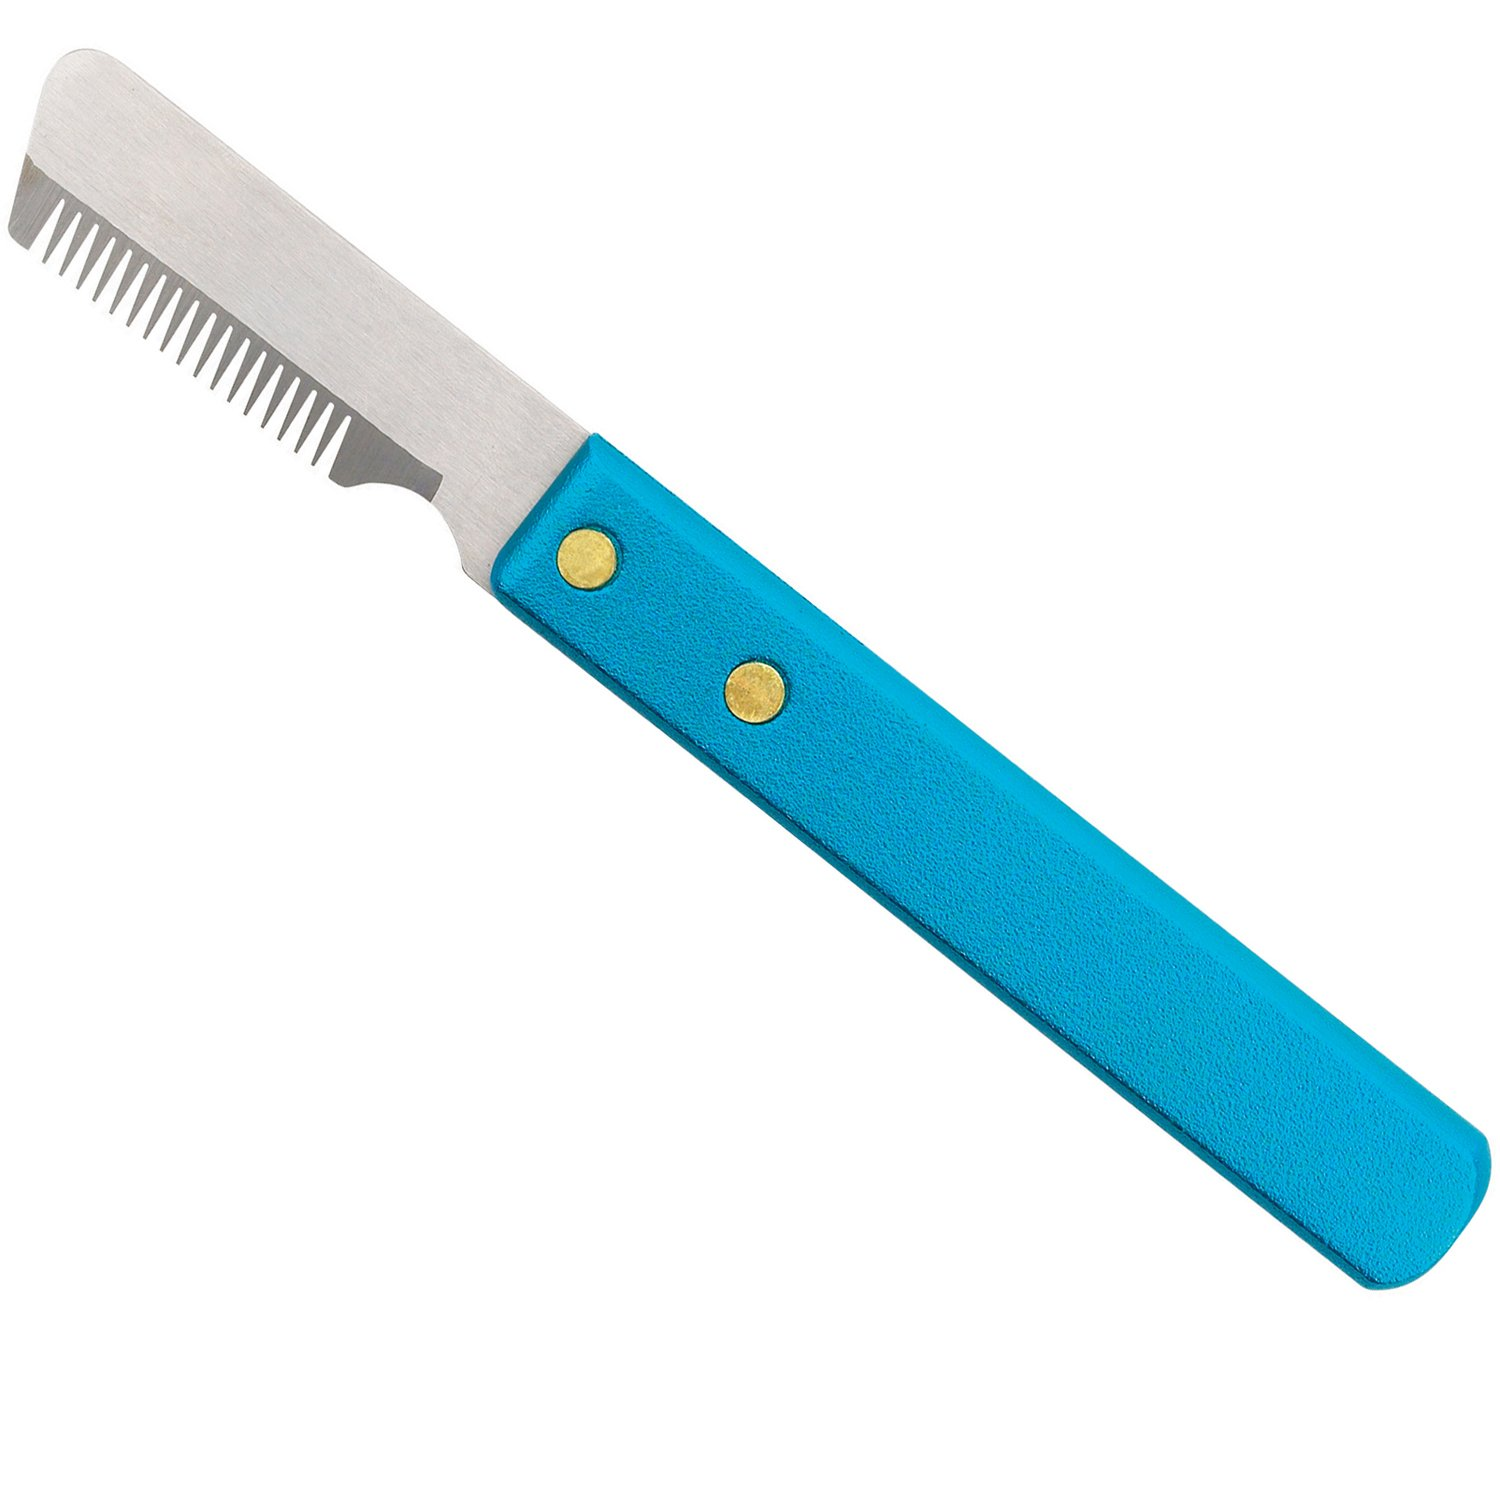 Master Grooming Tools Stripping Knives - Non-Slip Tools for Grooming Dogs - Medium, 6¾'' by Master Grooming